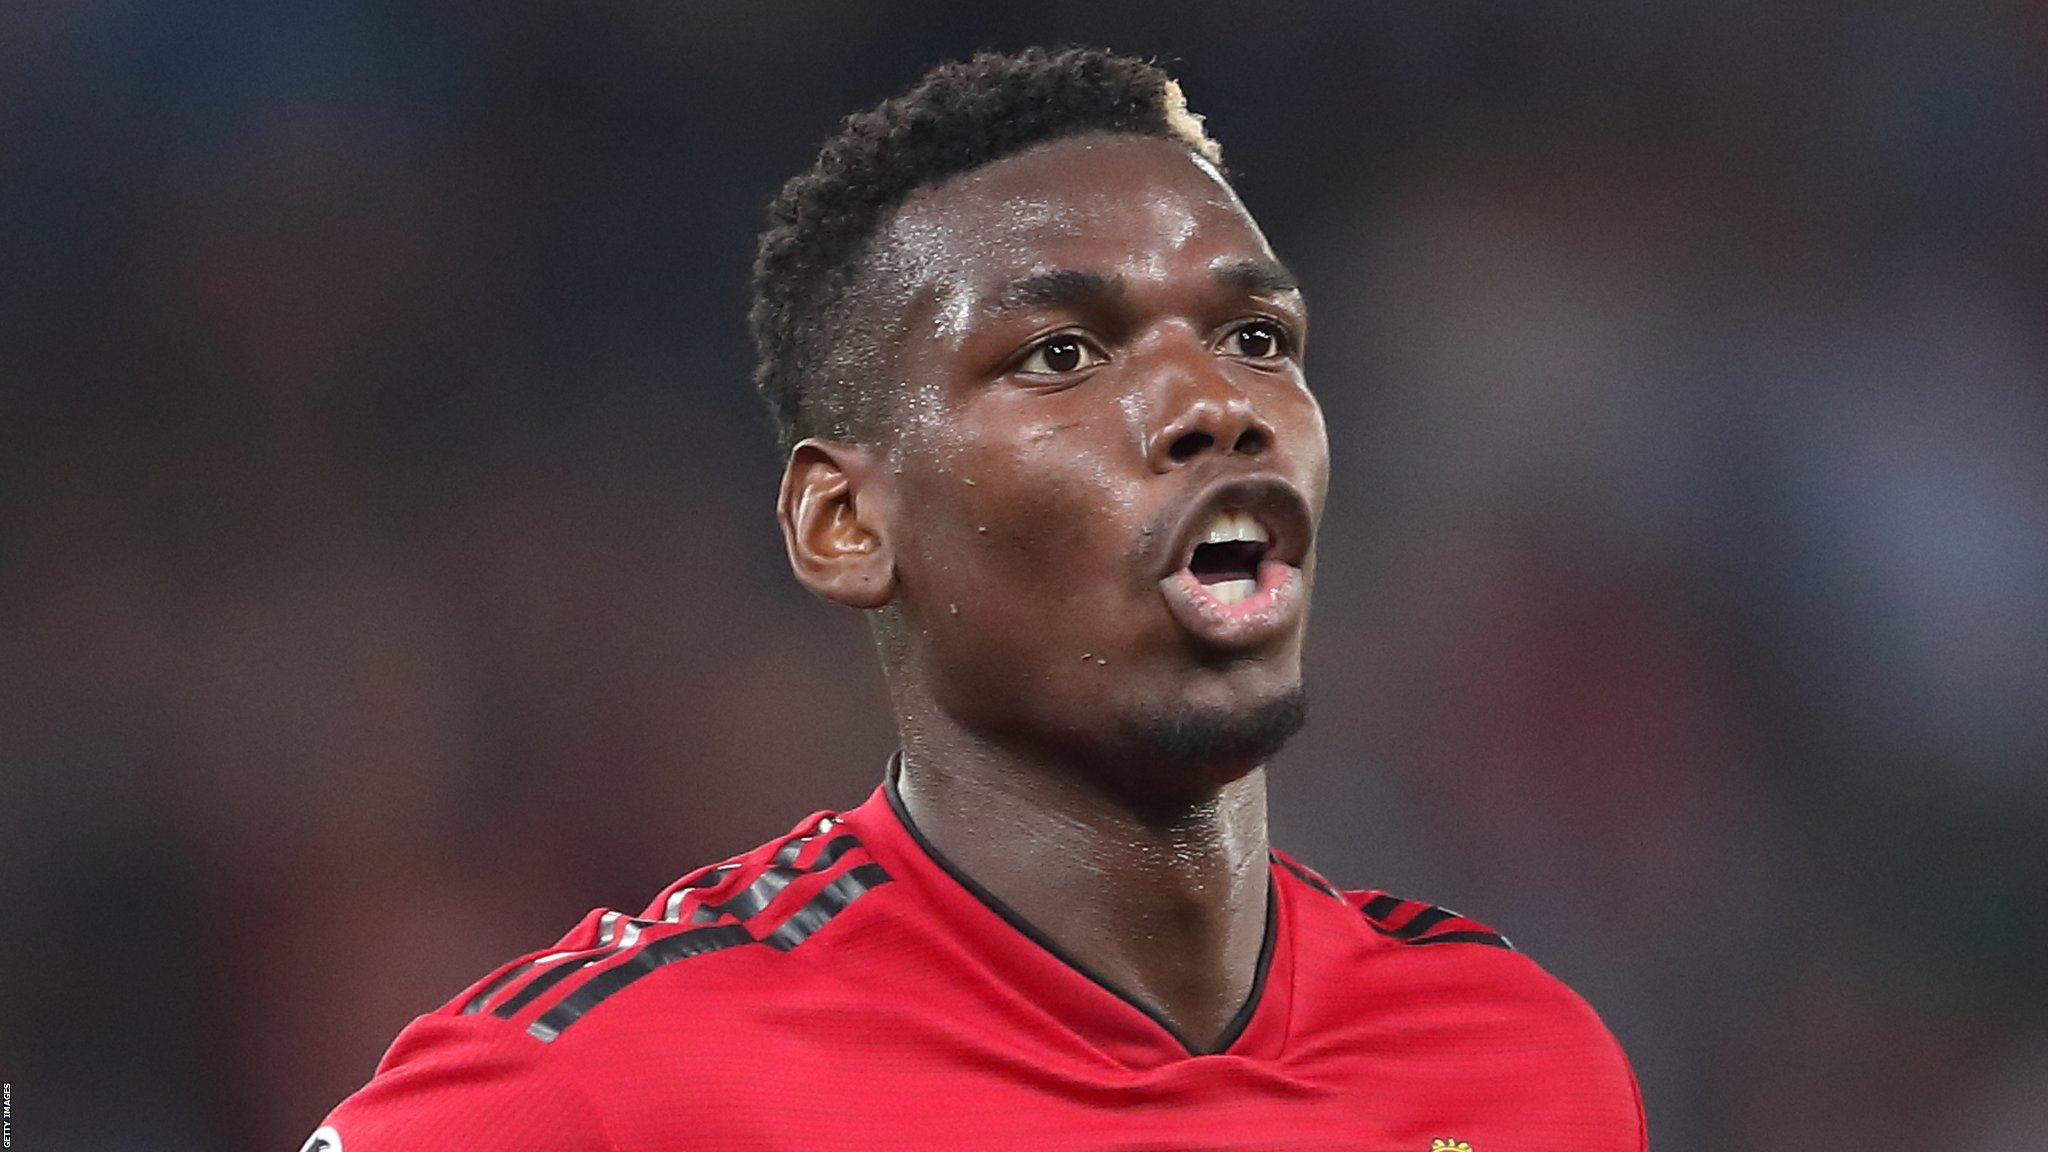 Young Boys 0-3 Man Utd: Paul Pogba scores two in comfortable win